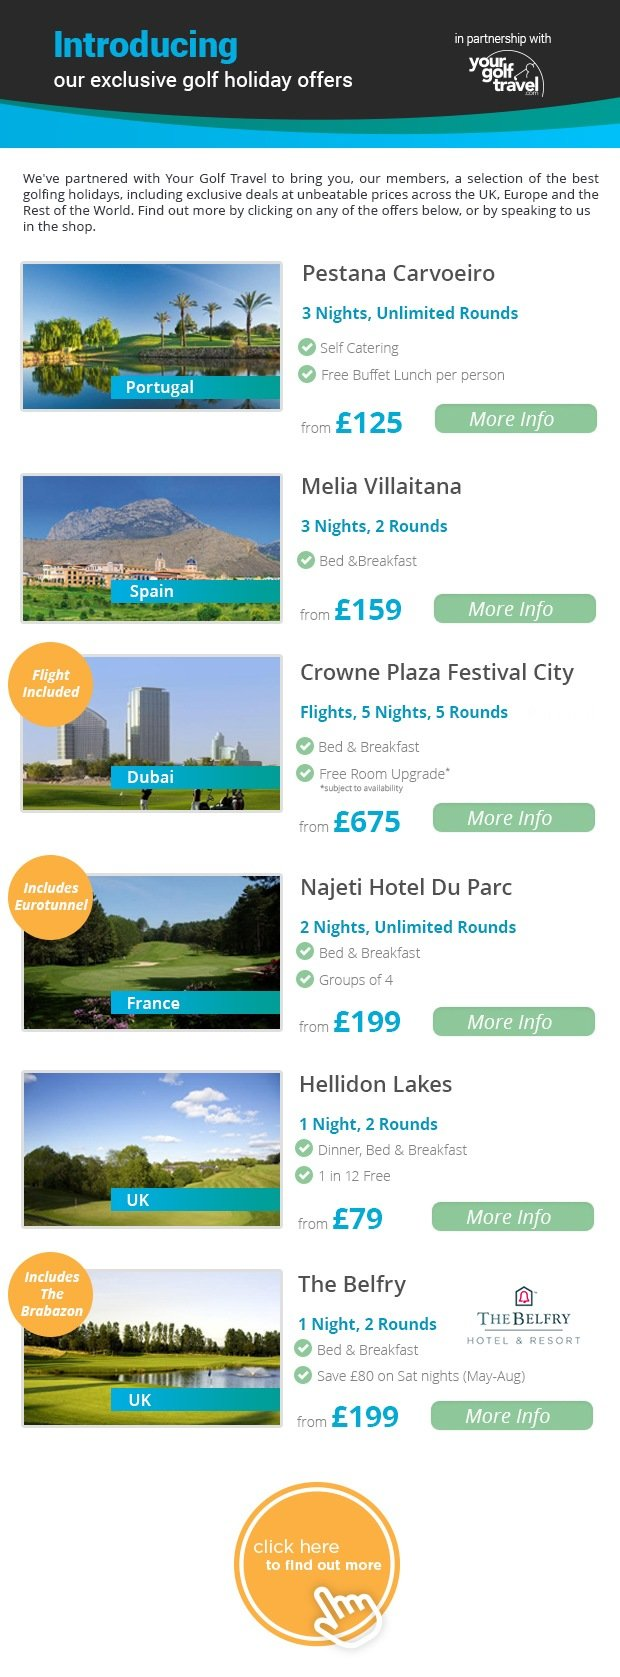 Your Golf Travel - The Belfry from £199